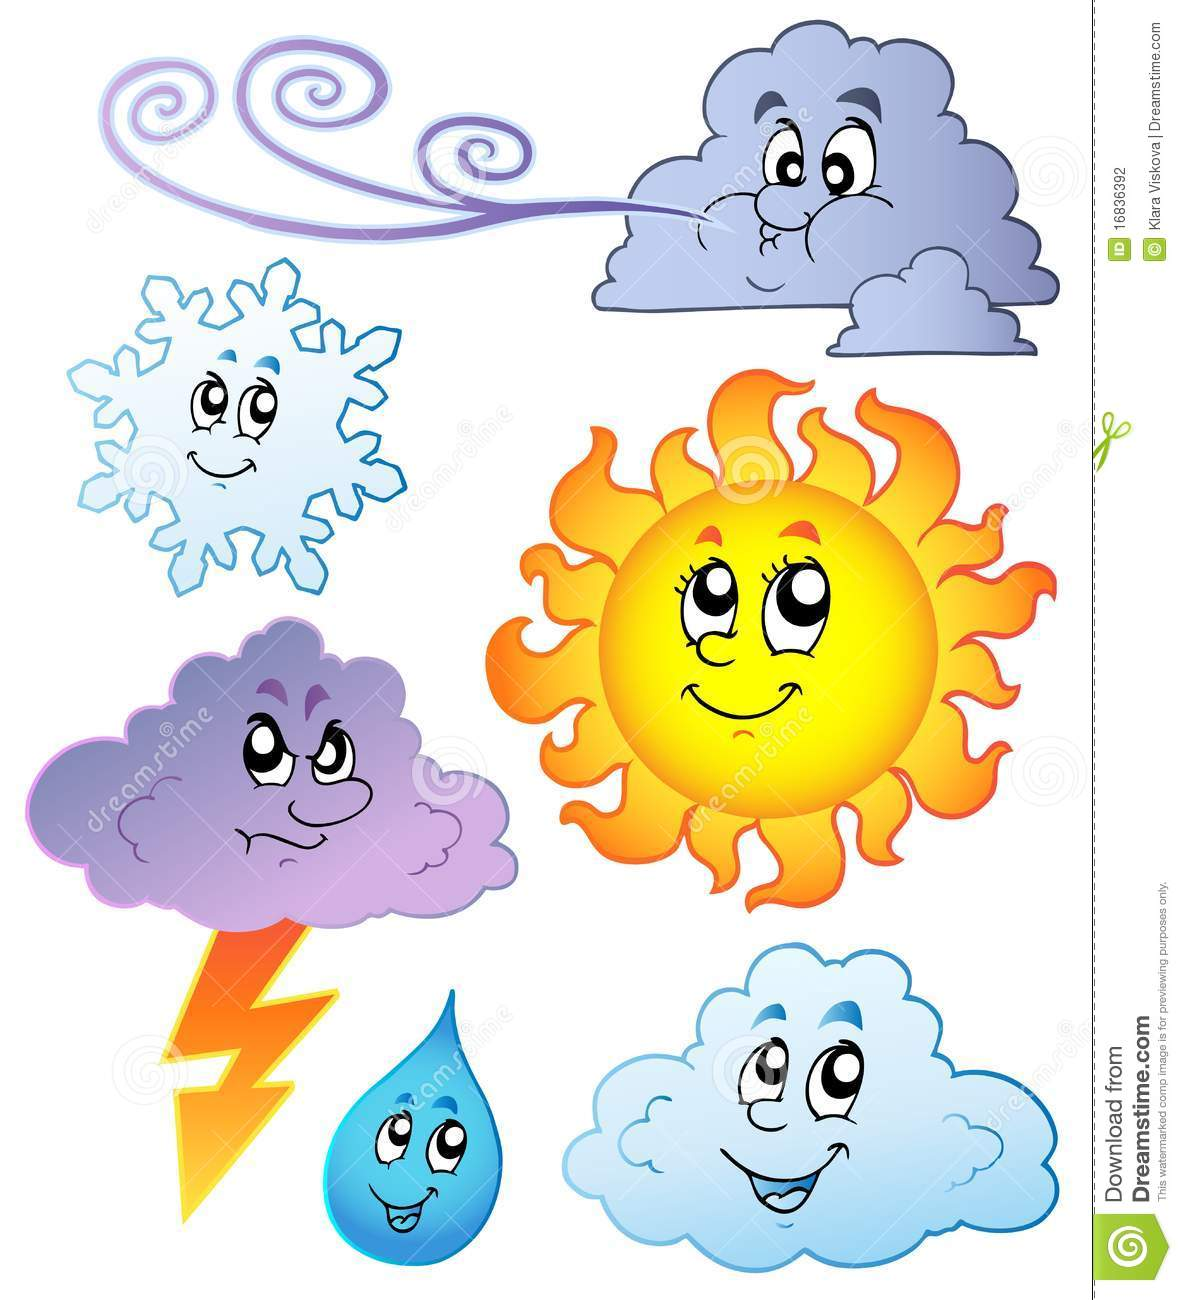 Cartoon Weather Images Stock Photography - Image: 16836392